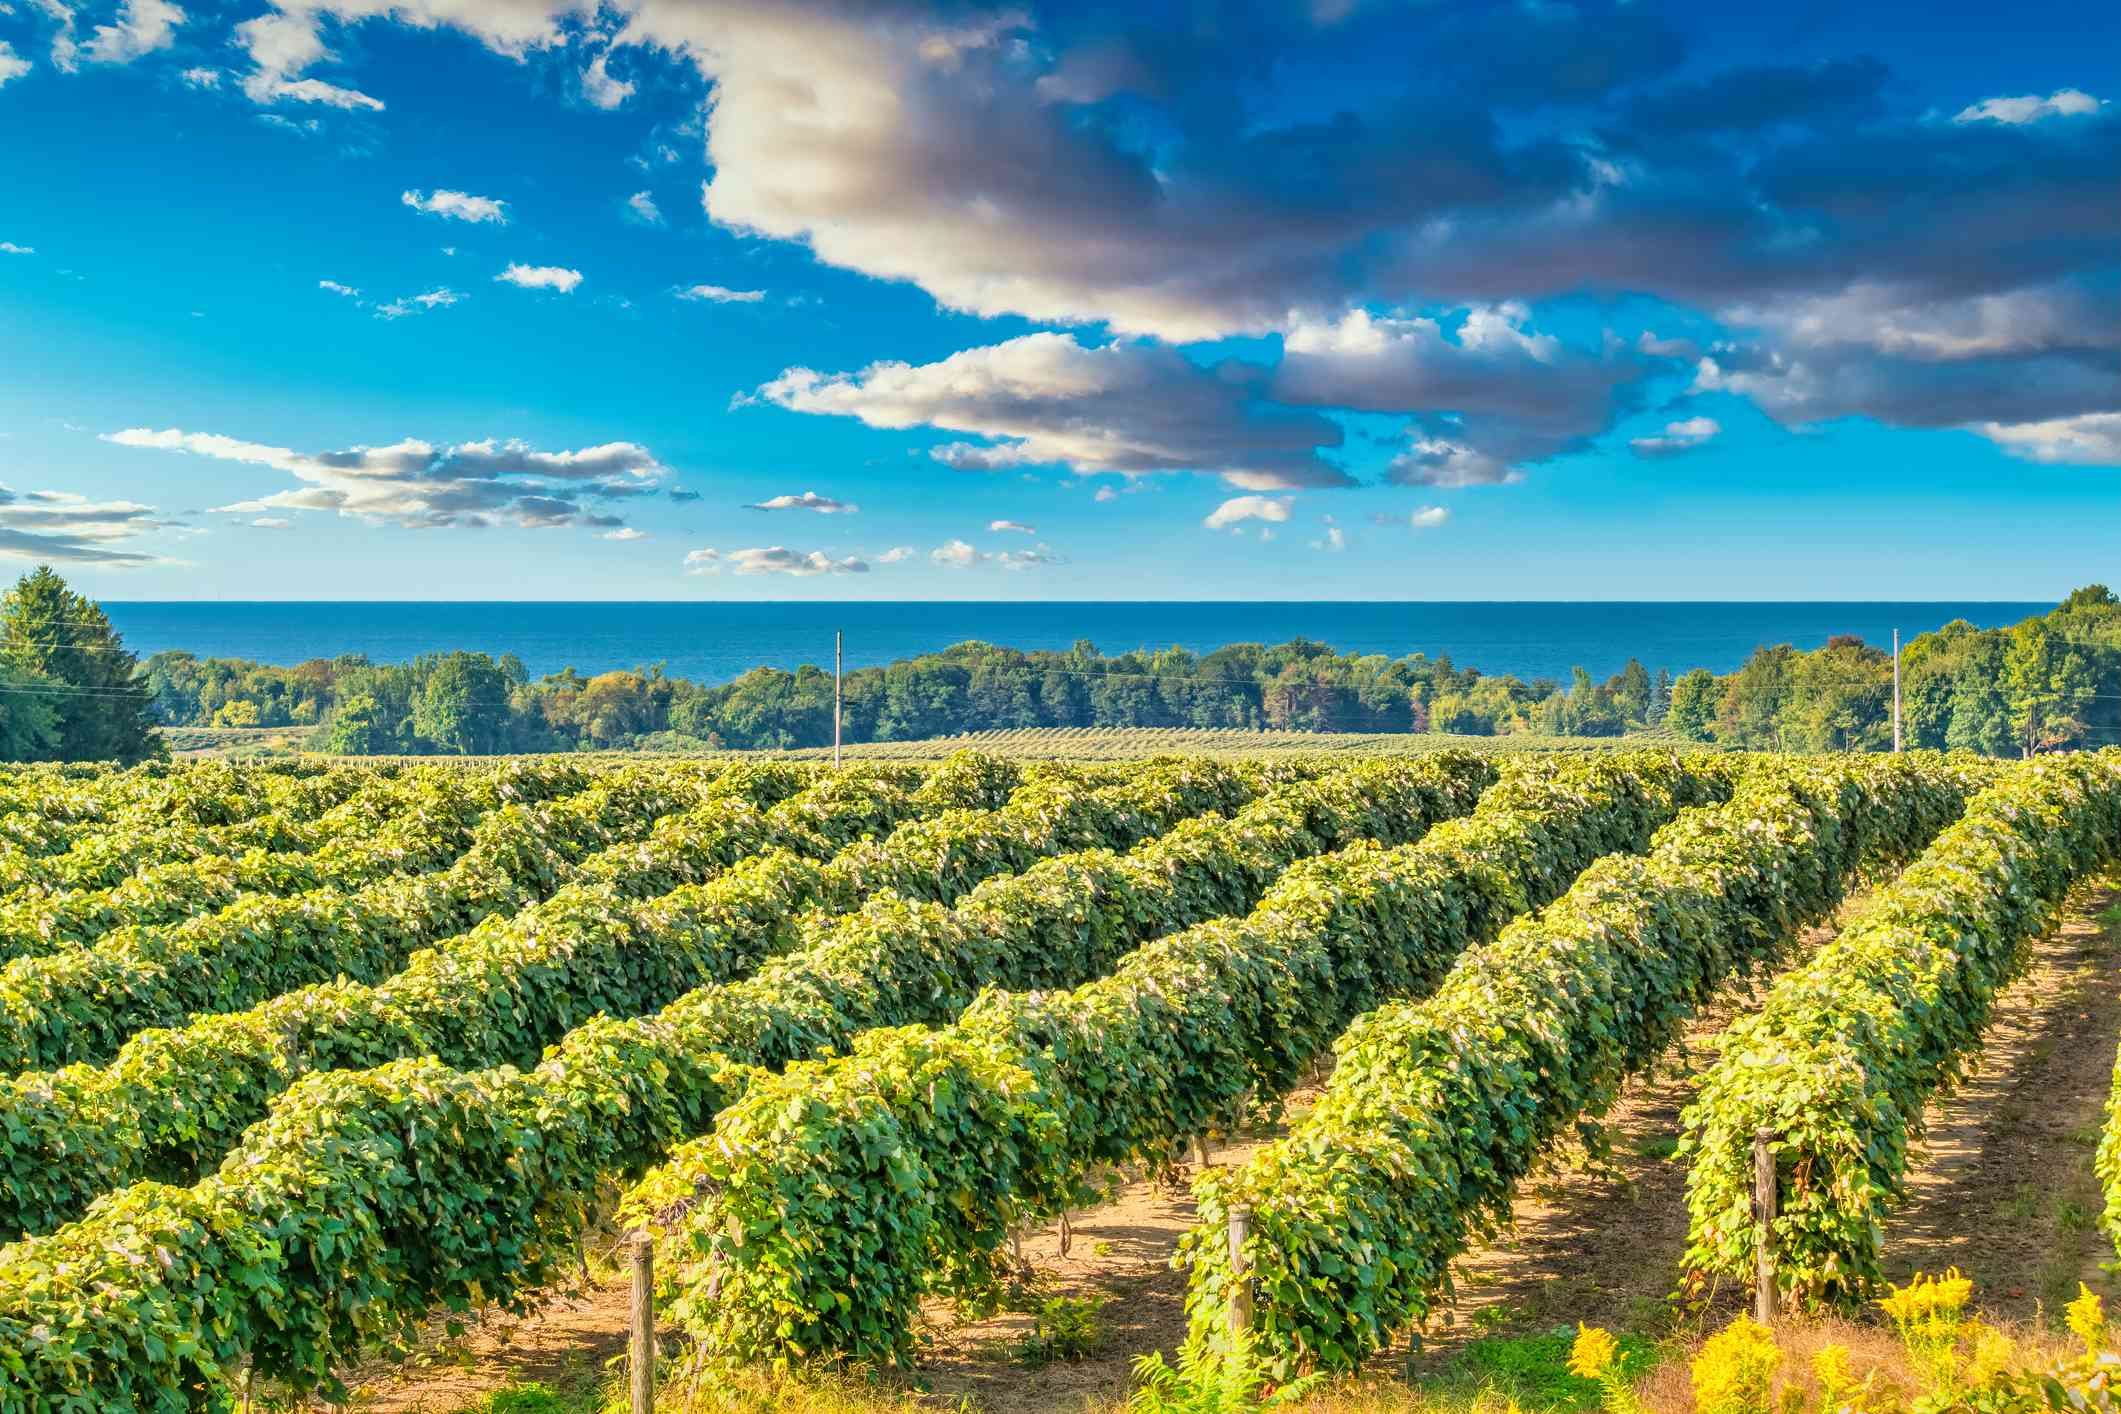 Vineyard on the shores of Lake Erie, Pennsylvania, USA on a sunny day.